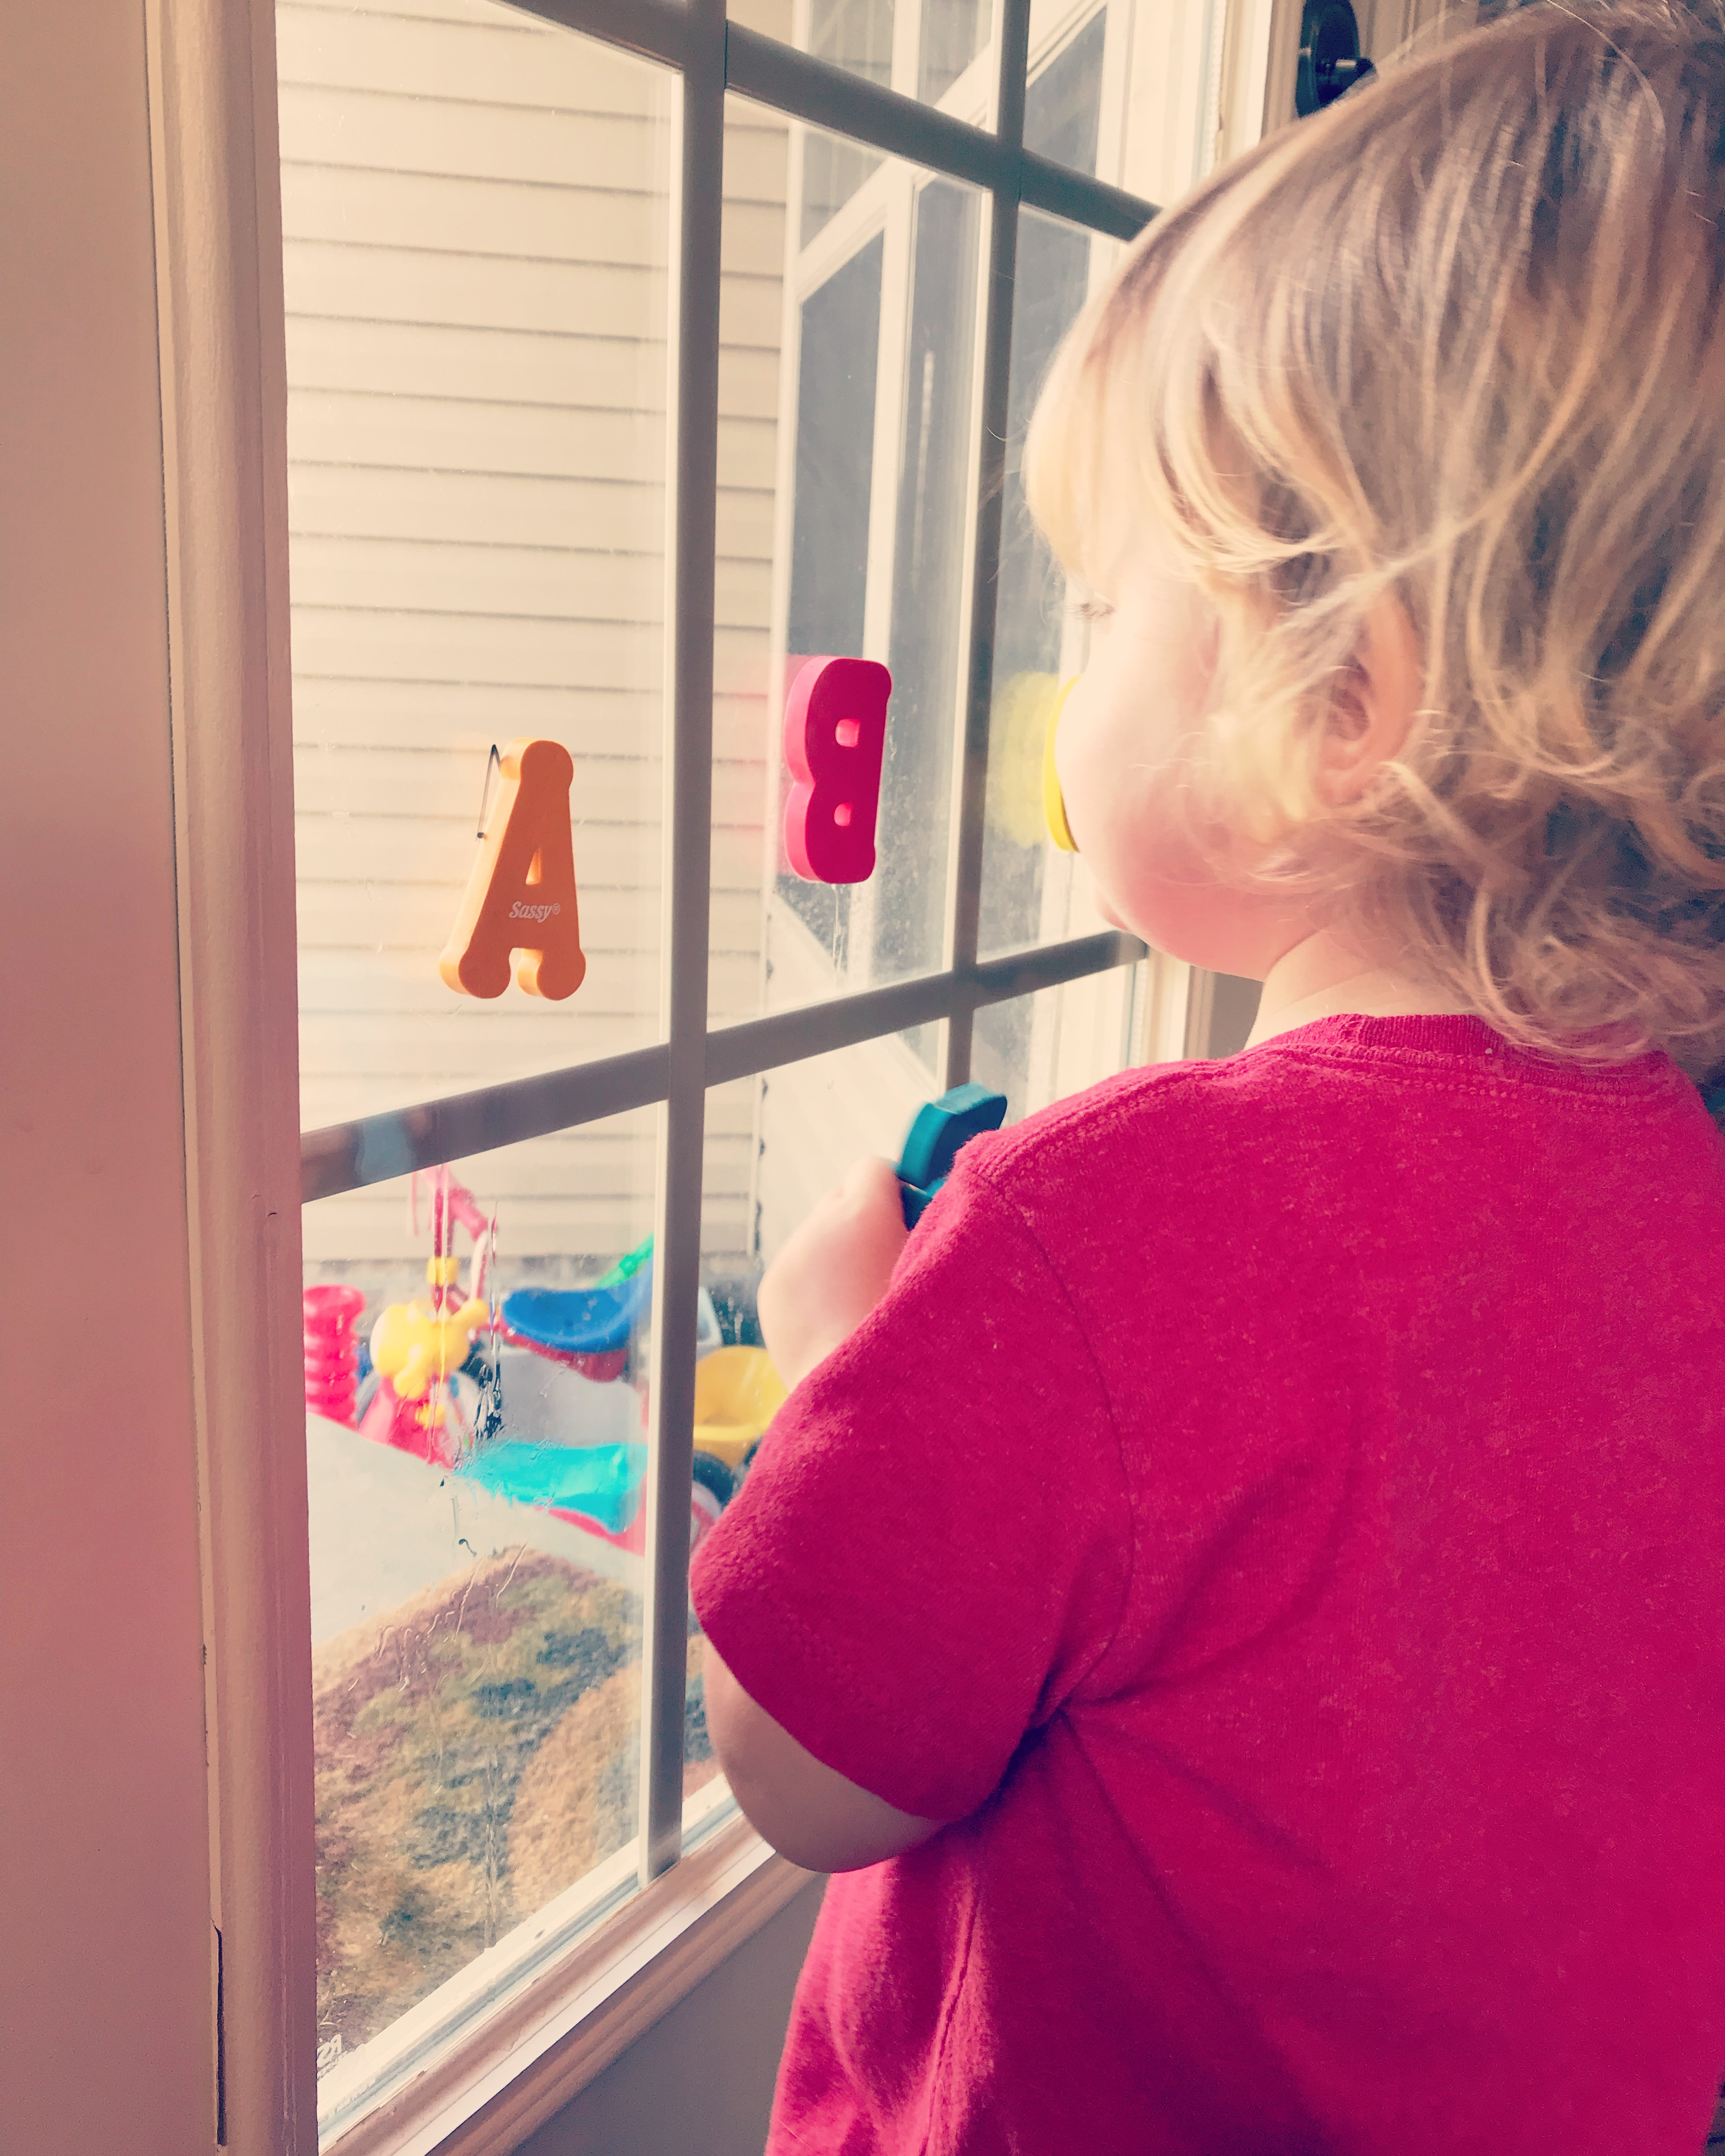 We use foam letters and stick them to the window for some toddler fun!